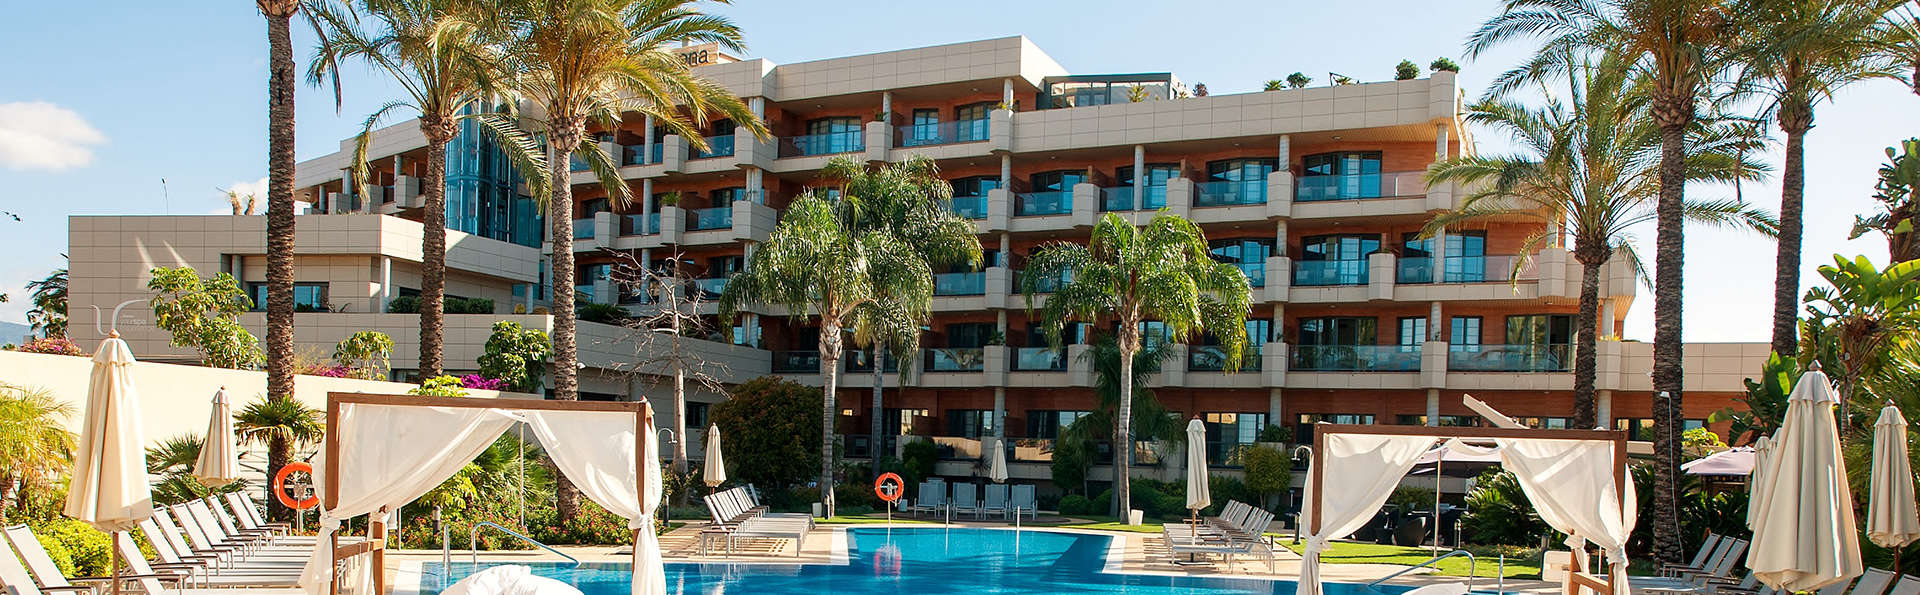 Exe Estepona Thalasso & Spa (Adults Only) - edit_pool3.jpg